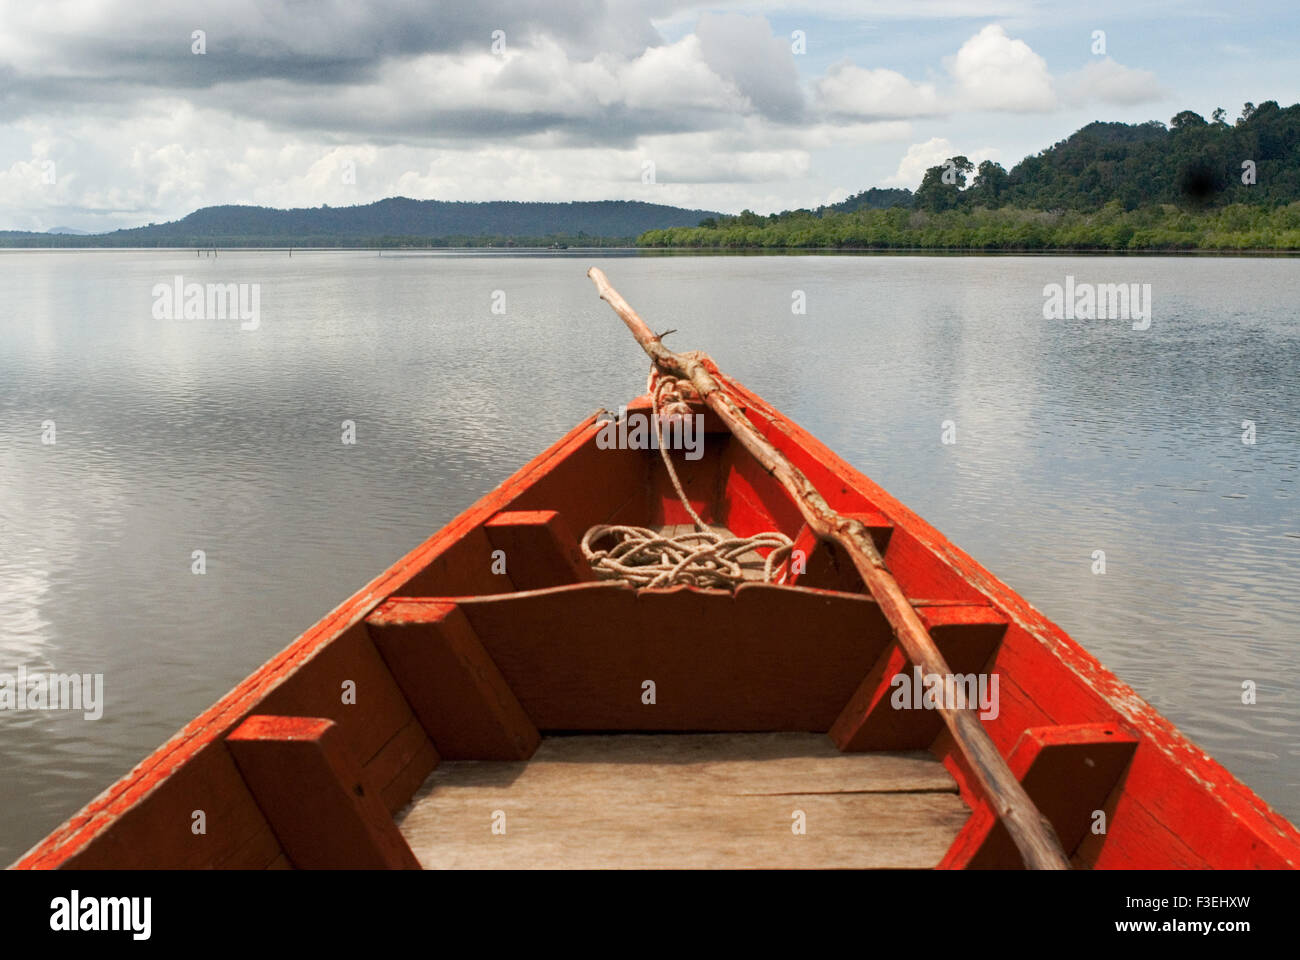 Boat in the Ream National Park. Ream National Park, 18 kilometres outside the beach resorts of Sihanoukville, is - Stock Image